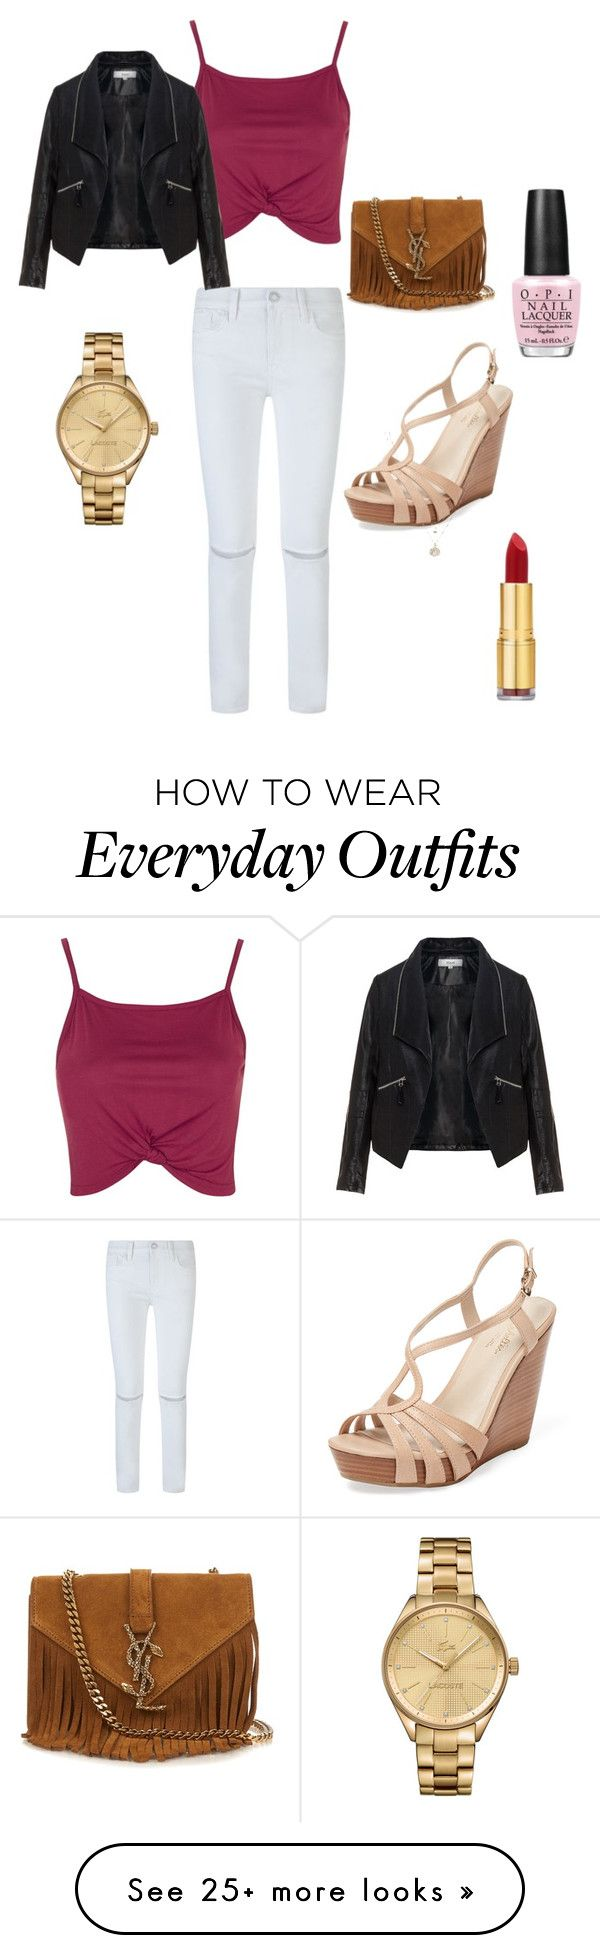 """Everyday outfit"" by juliataleb on Polyvore featuring Rebecca Minkoff, Topshop, Zizzi, Seychelles, Yves Saint Laurent, LC Lauren Conrad, Lacoste, OPI and Isaac Mizrahi"